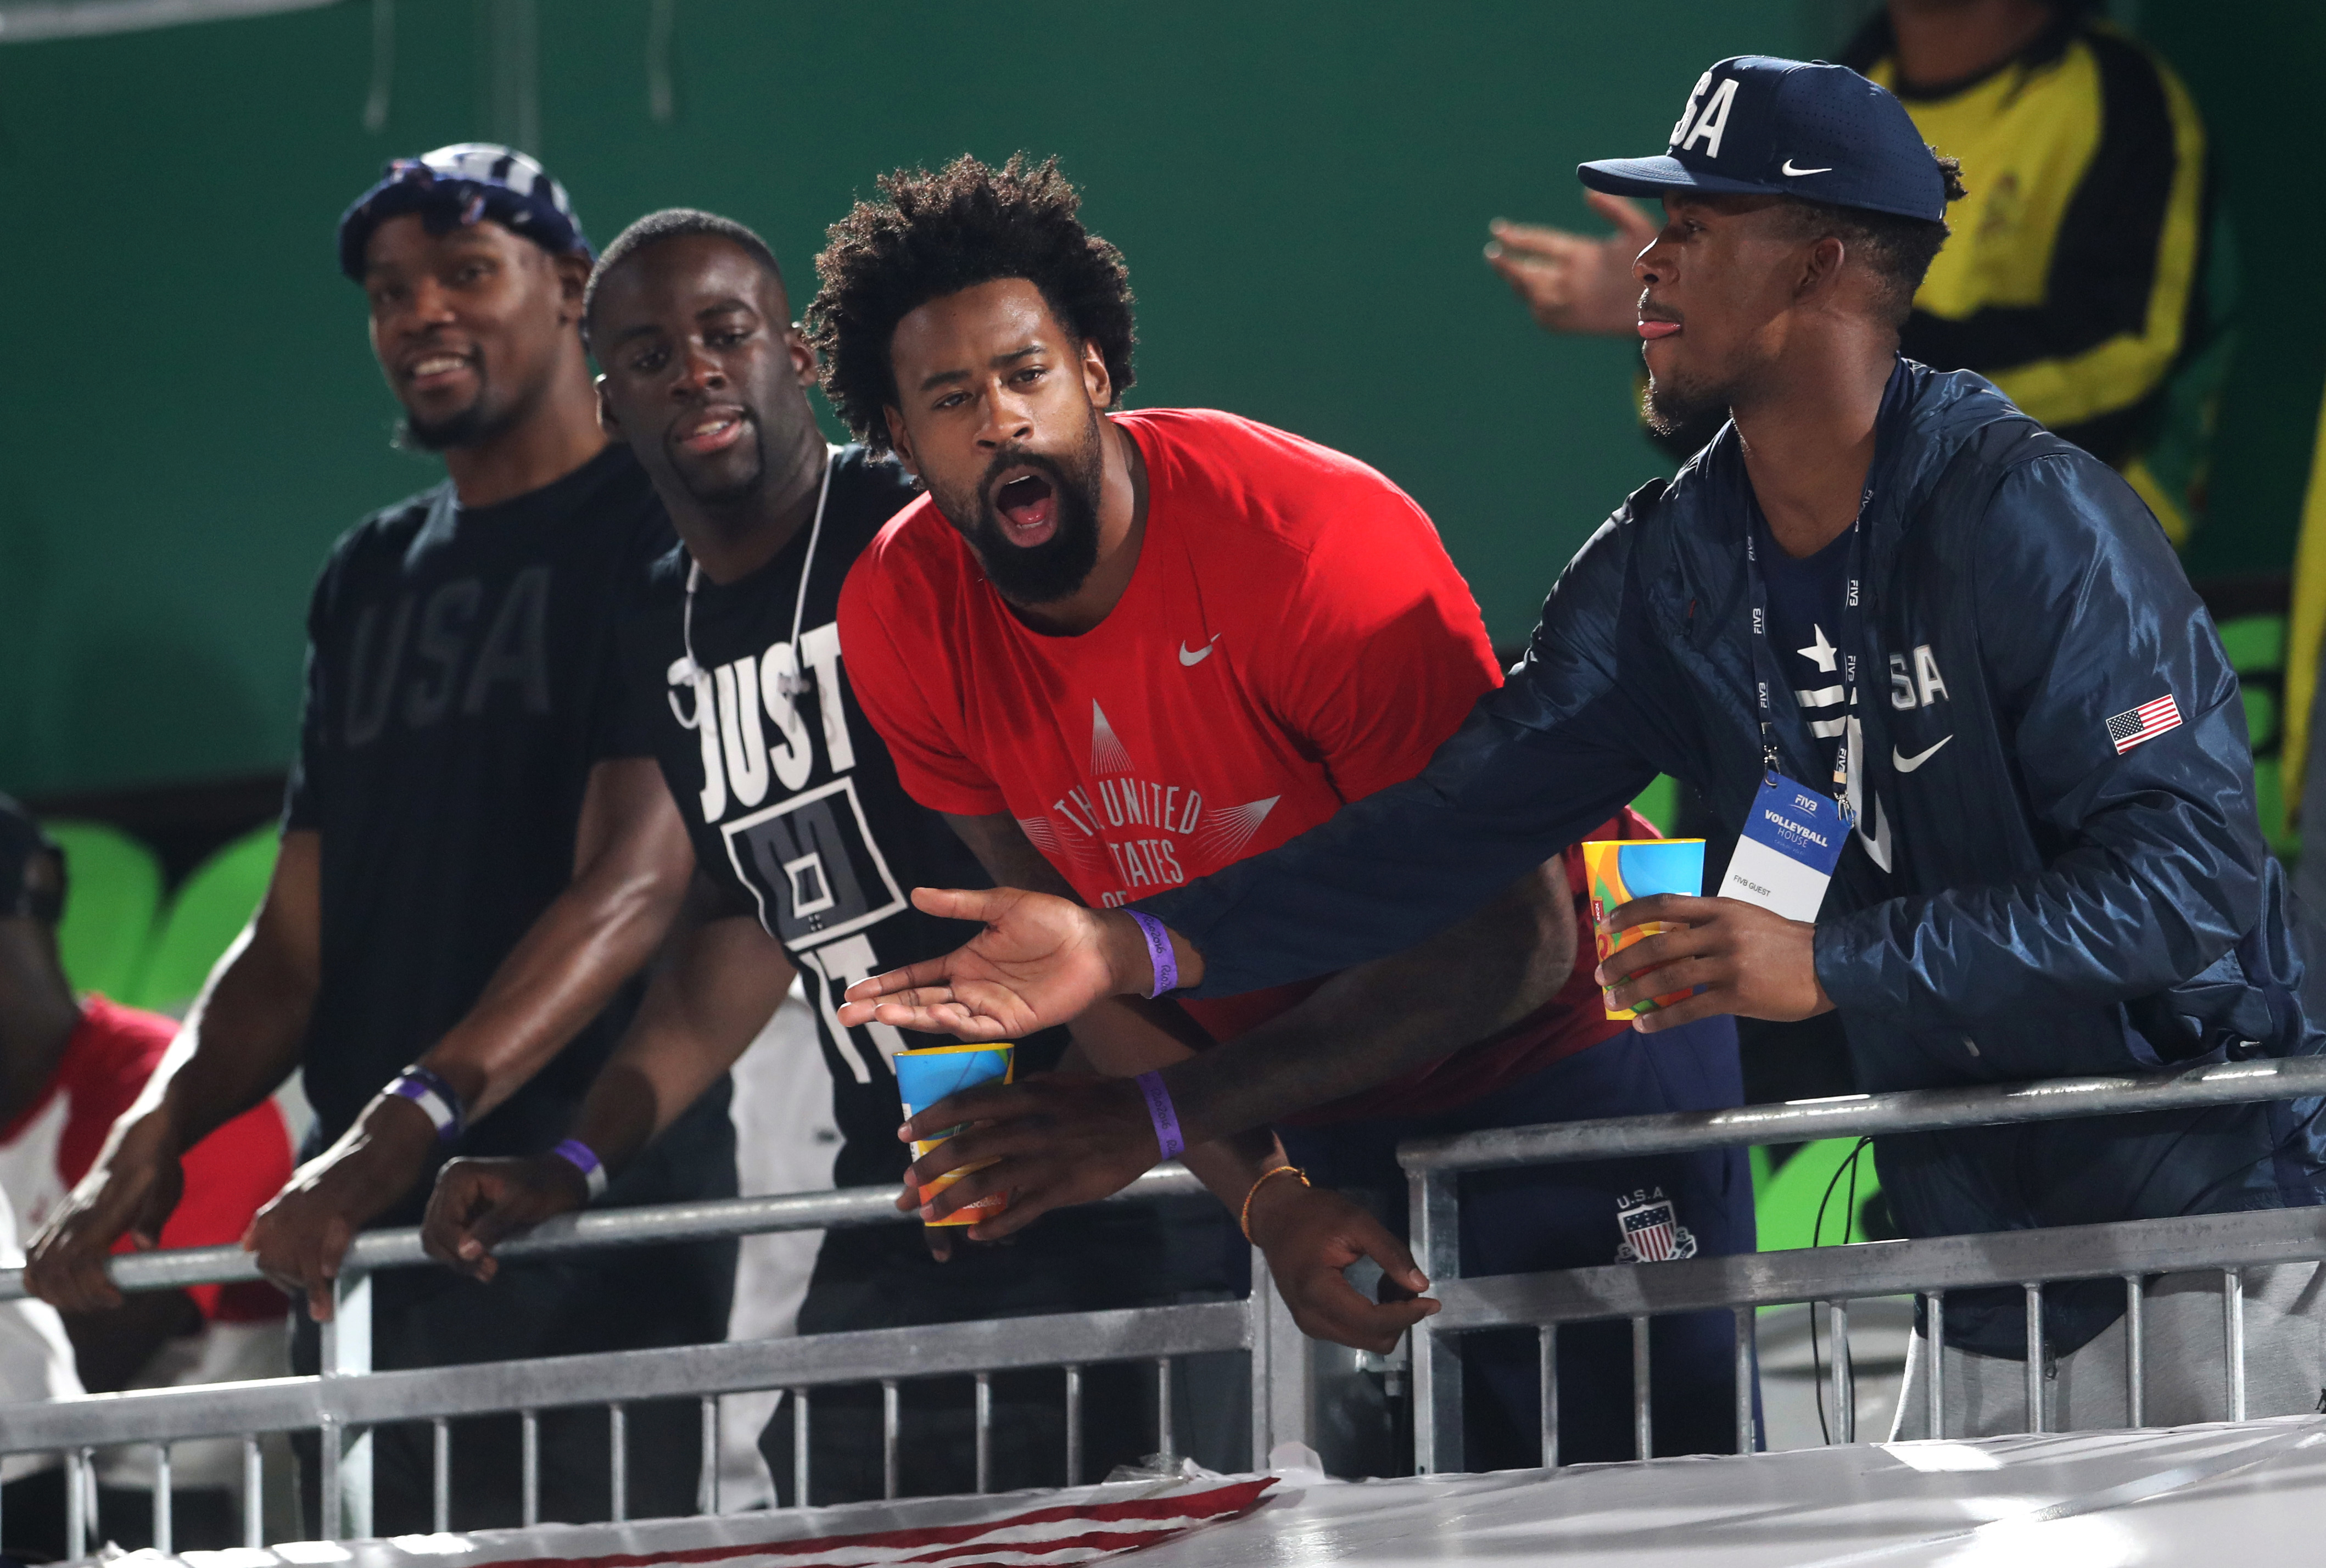 Members of United States' basketball team, from left, Kevin Durant, Draymond Green, DeAndre Jordan and Jimmy Butler cheer during a women's beach volleyball quarterfinal match between United States and Australia at the 2016 Summer Olympics in Rio de Janeir